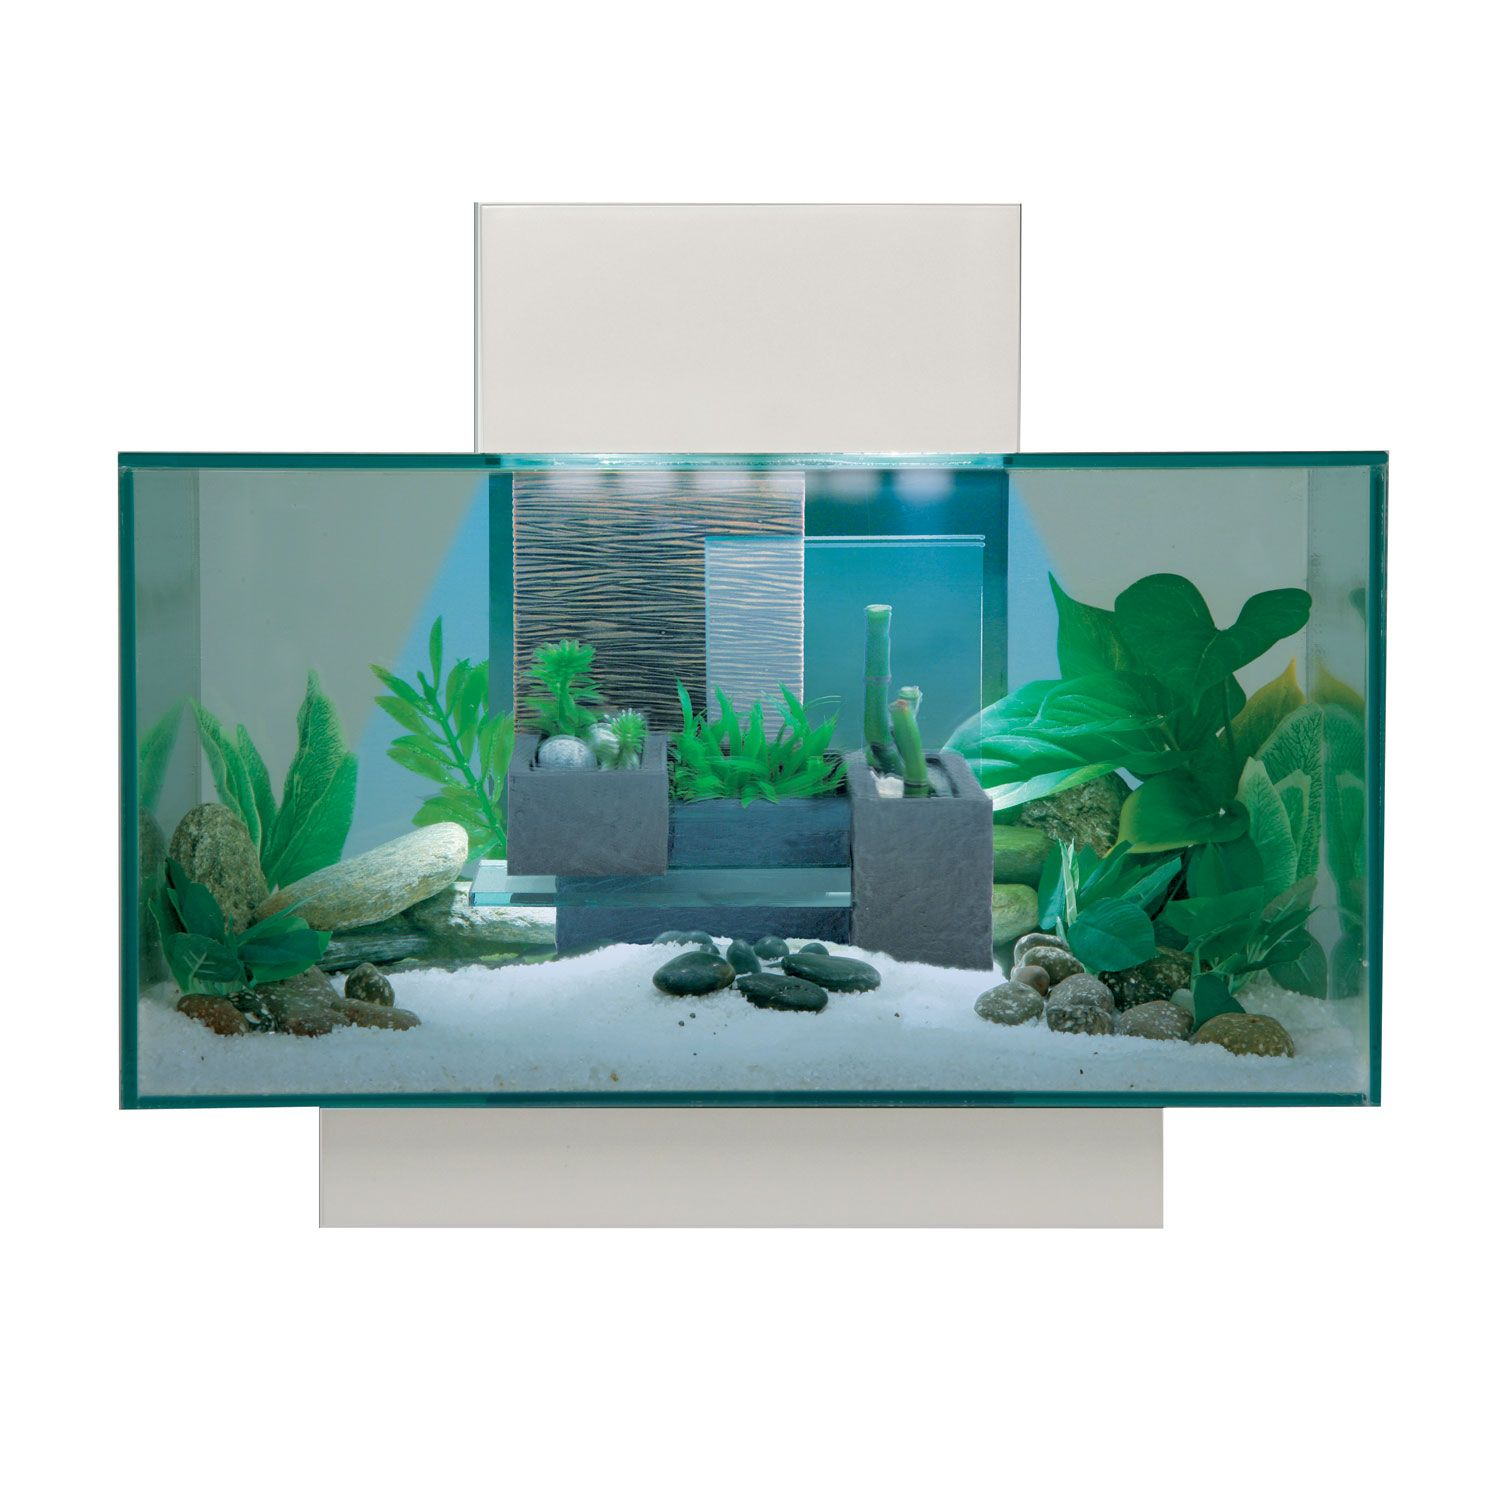 Fluval Edge Aquarium Kit in White Aquarium kit, Fish